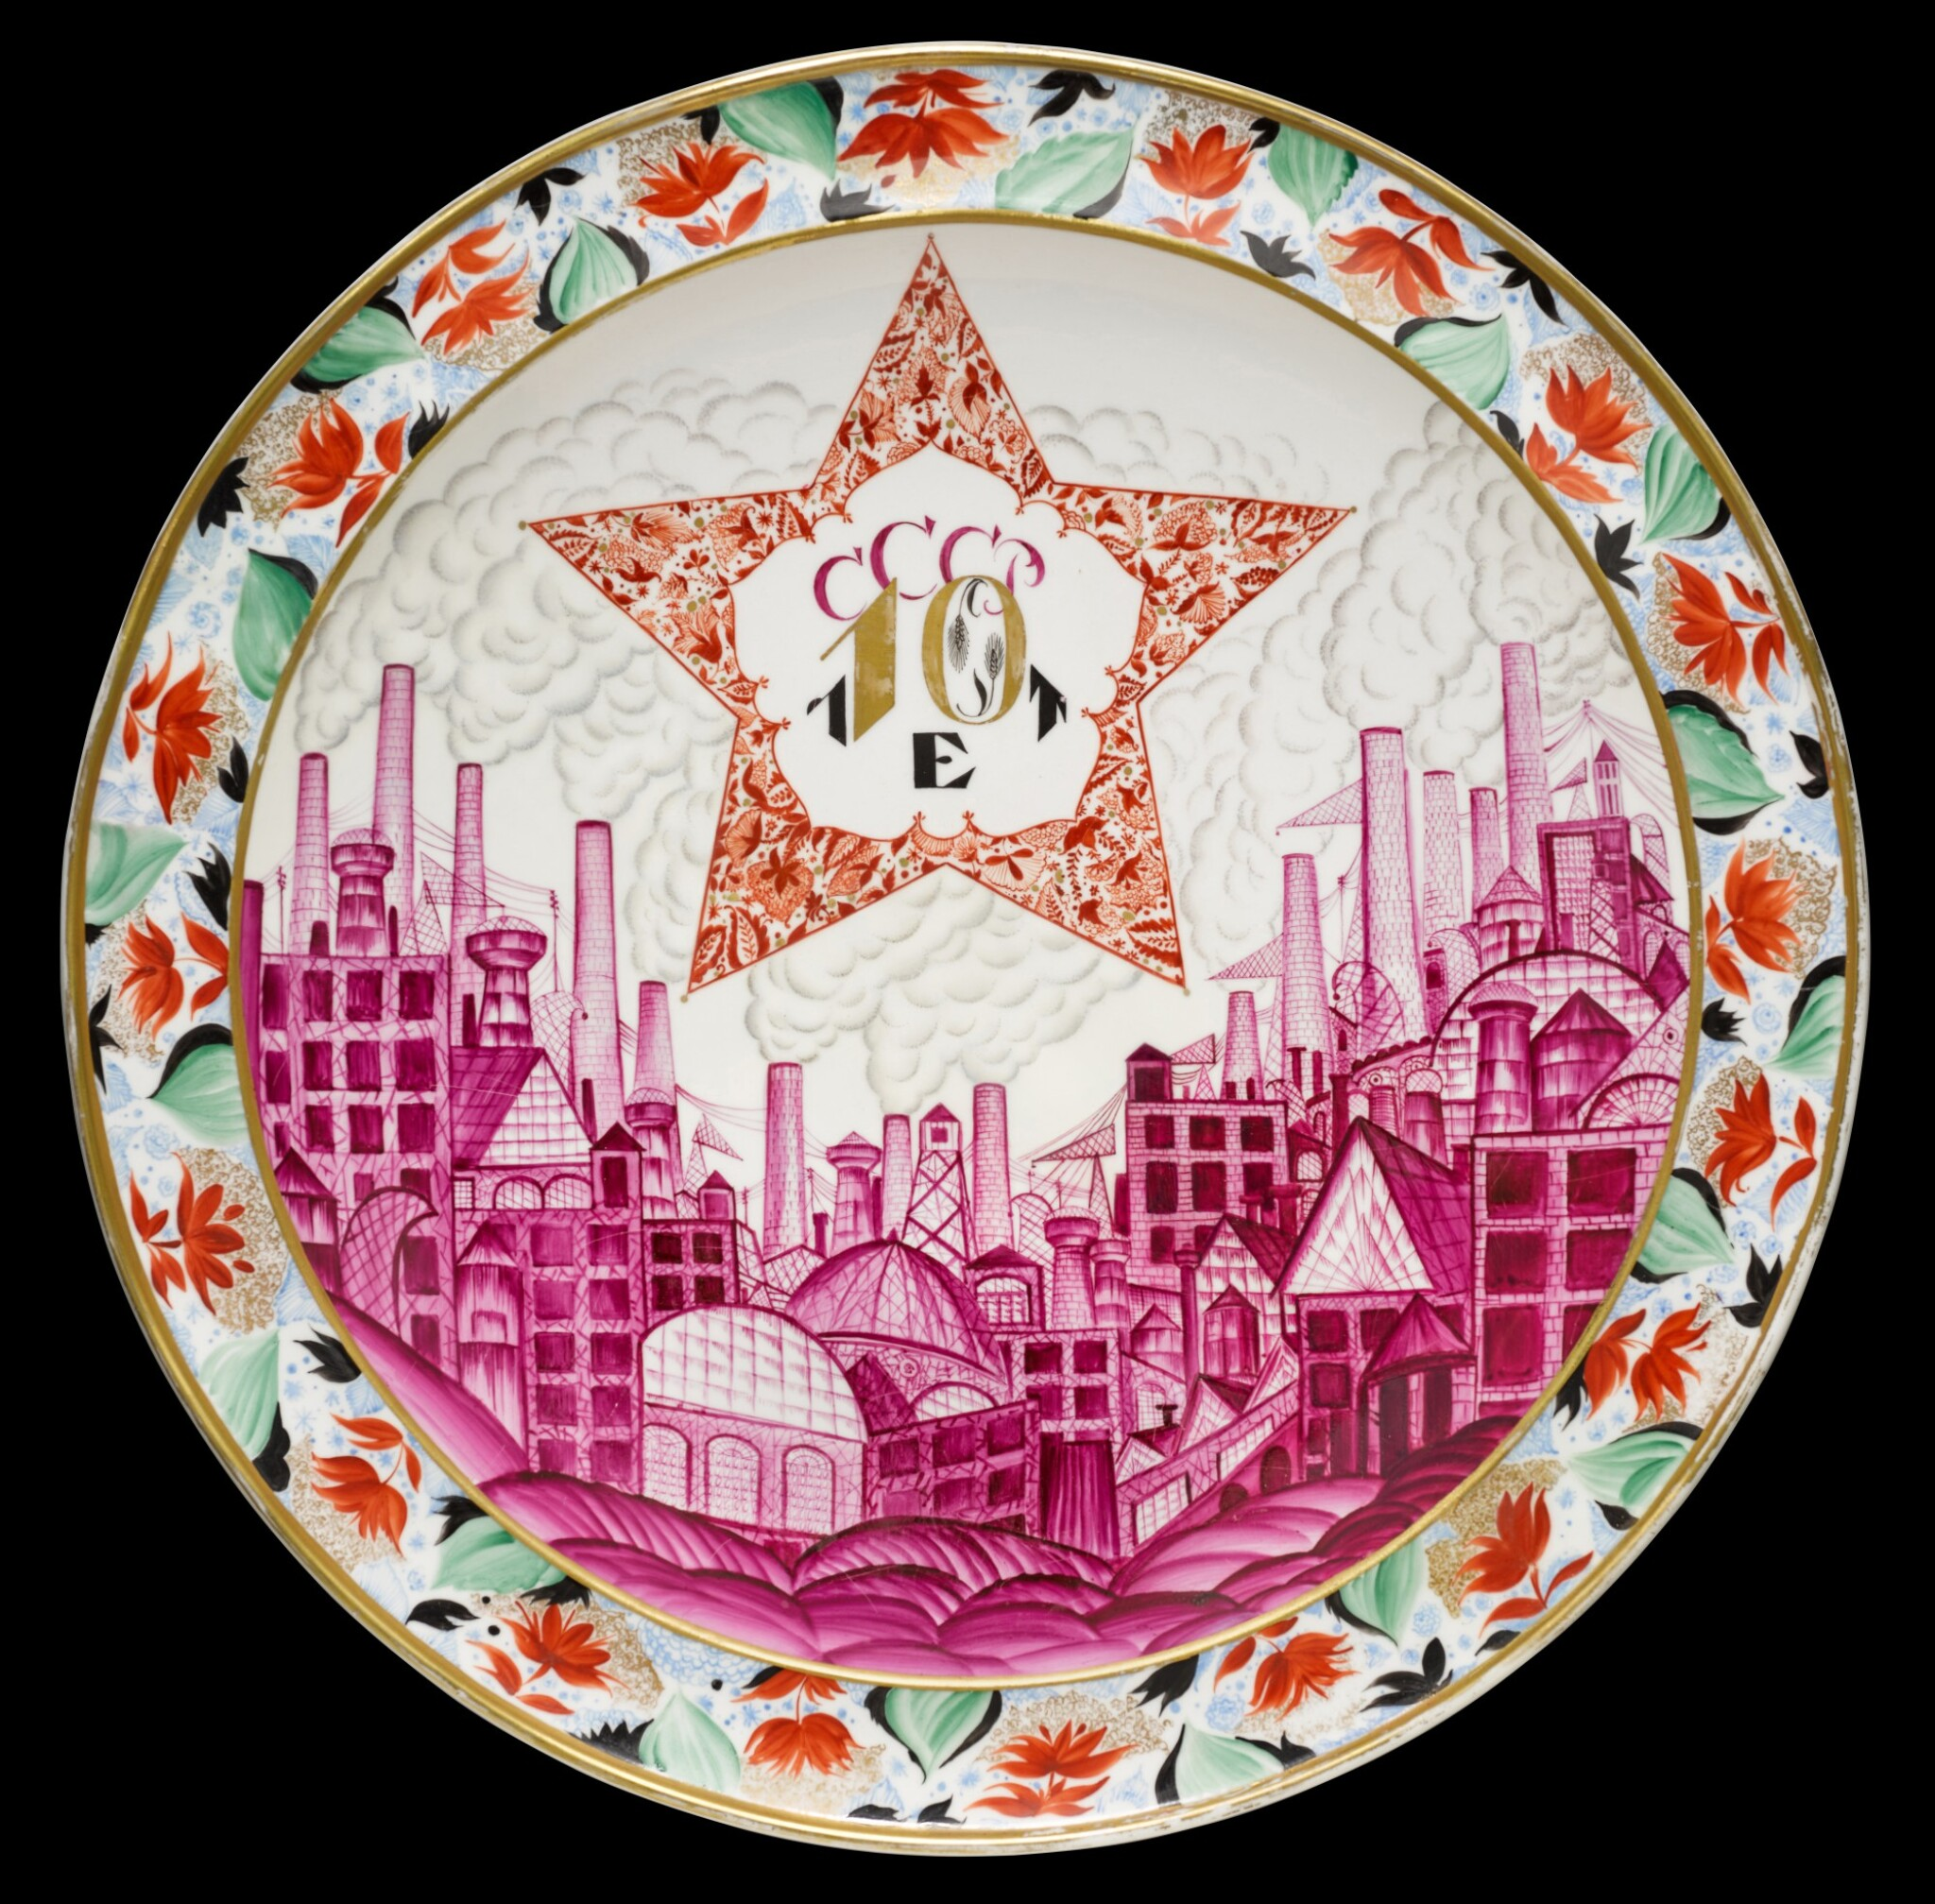 View full screen - View 1 of Lot 176. 10 years USSR: a rare and large Soviet porcelain propaganda charger, Aleksey Vorobyevsky, Lomonosov Porcelain factory, Leningrad, 1927.